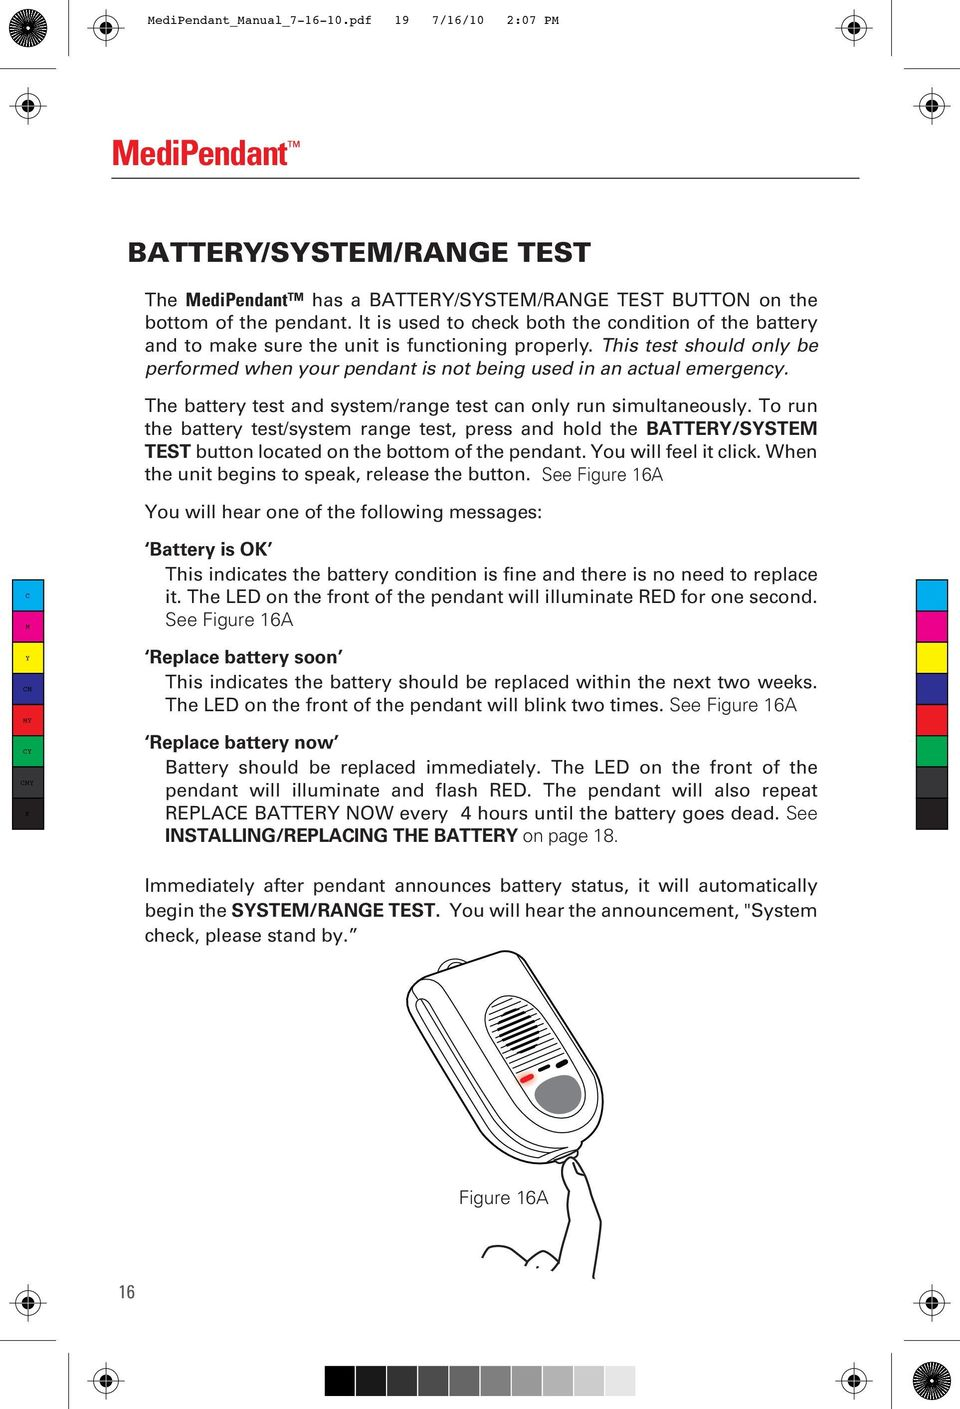 The battery test and system/range test can only run simultaneously. To run the battery test/system range test, press and hold the BATTER/SSTE TEST button located on the bottom of the pendant.